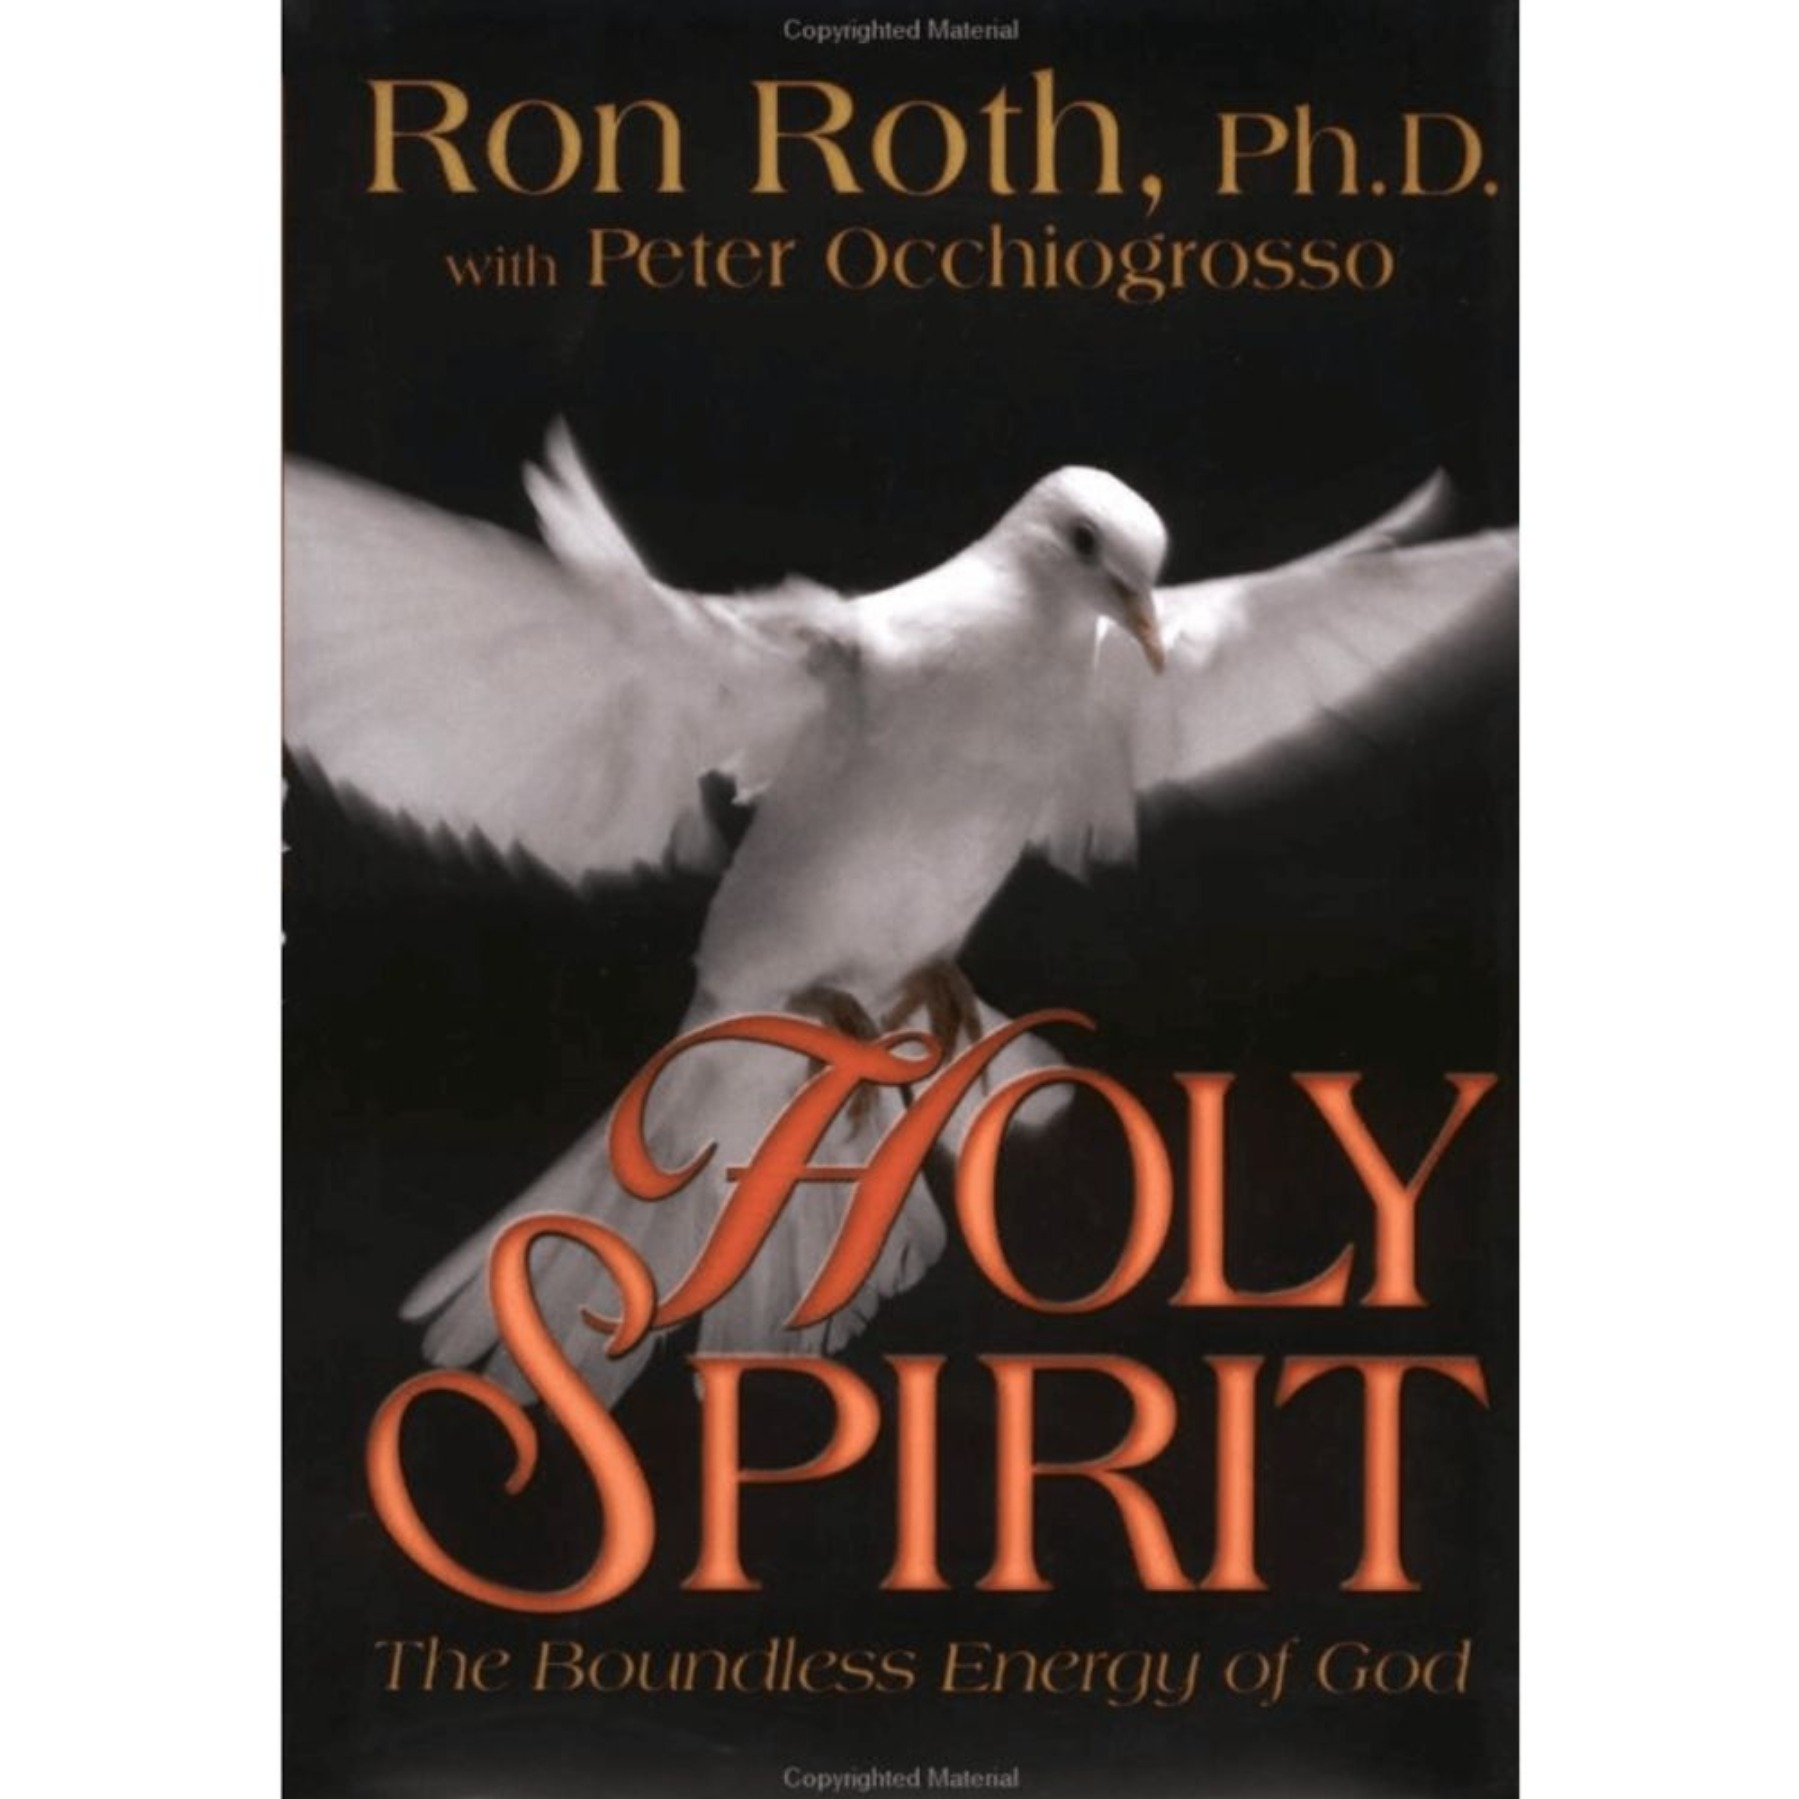 Holy Spirit: The Boundless Energy of God by Ron Roth Ph.D.